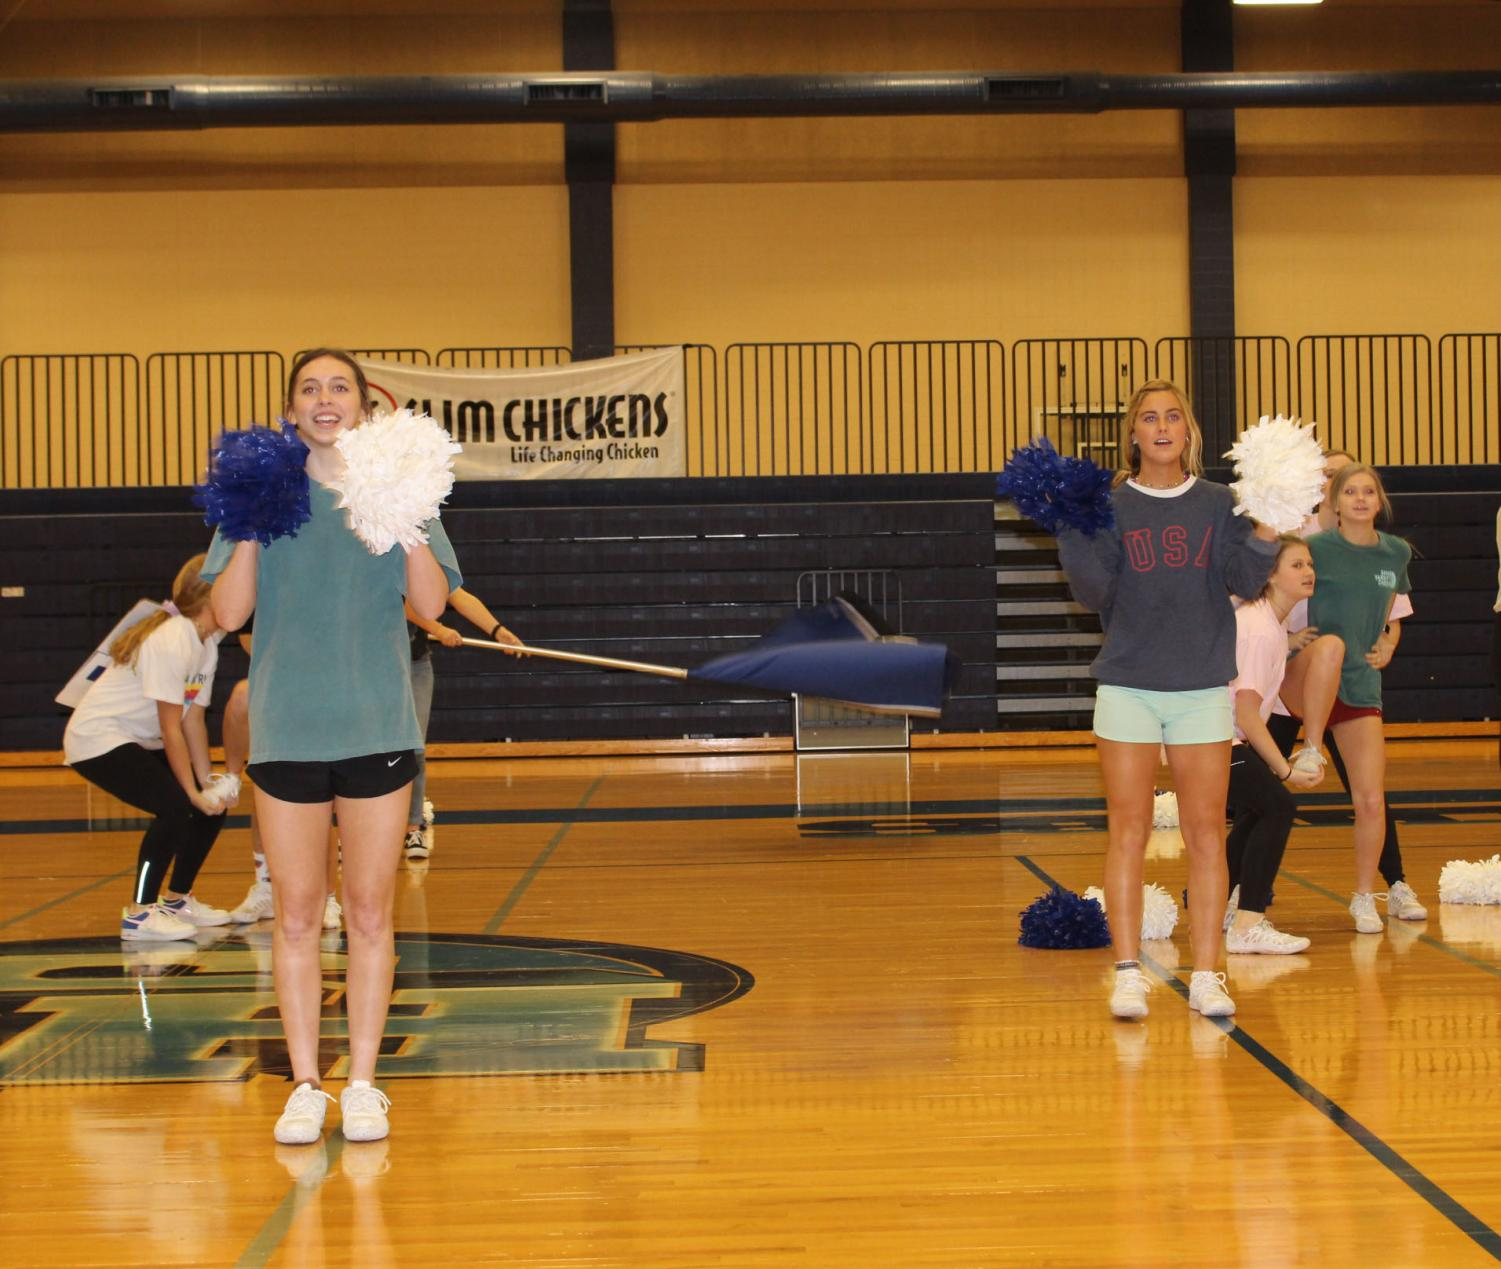 The squad worked night and day to take on the State Cheer Challenge. Students were able to watch via Facebook Live as the girls placed in the top half of the competition.